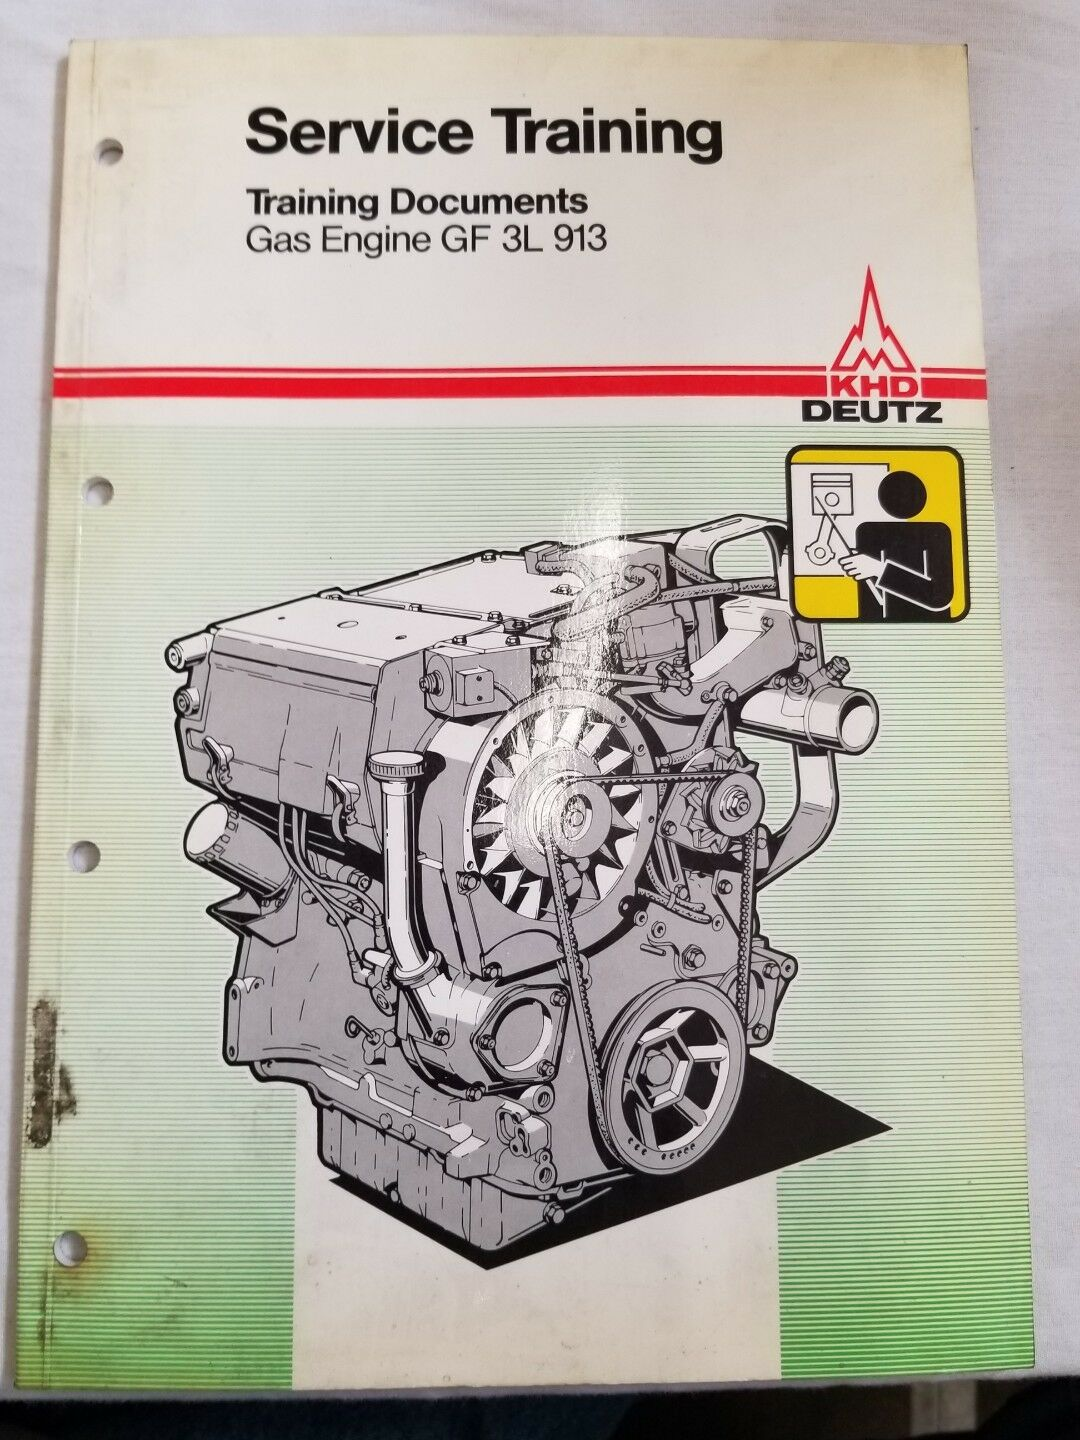 KHD Deutz GF3L913 Industrial Engine WorkShop Shop Service Training Manual 1  of 1Only 1 available ...